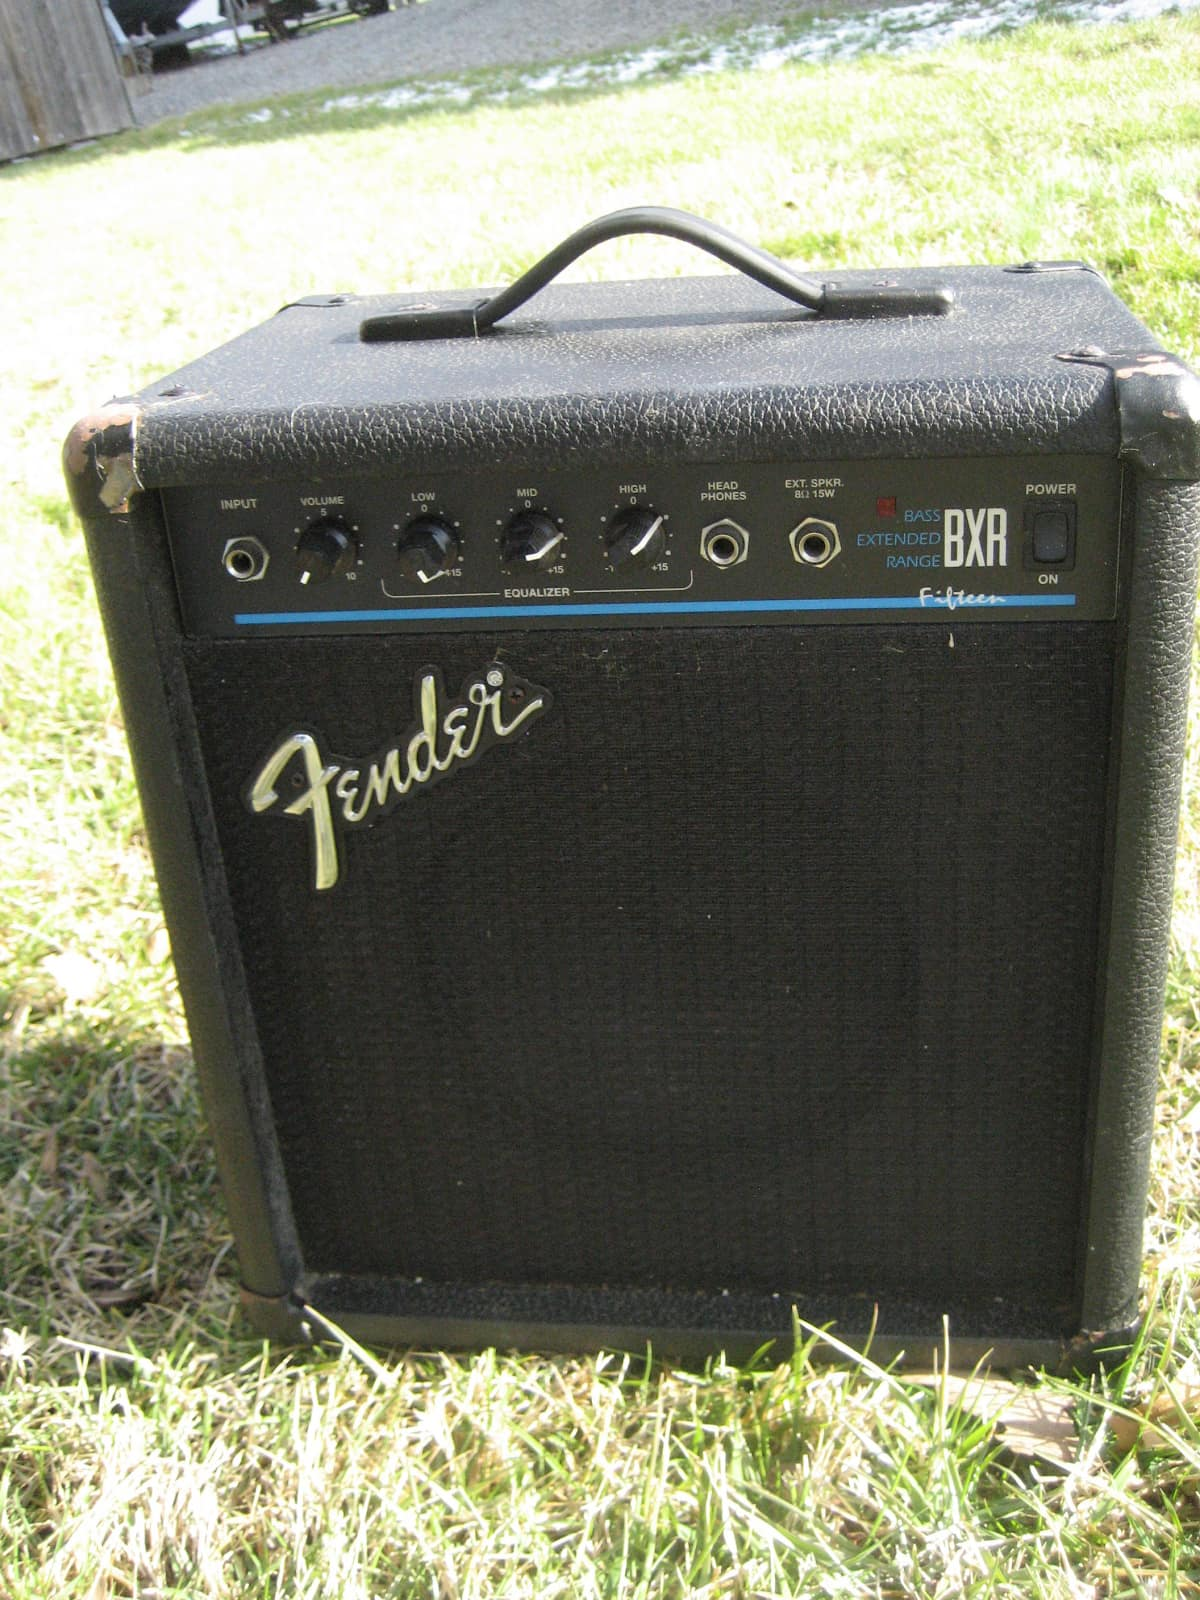 fender bxr 15 bass guitar amp made in mexico good practice reverb. Black Bedroom Furniture Sets. Home Design Ideas